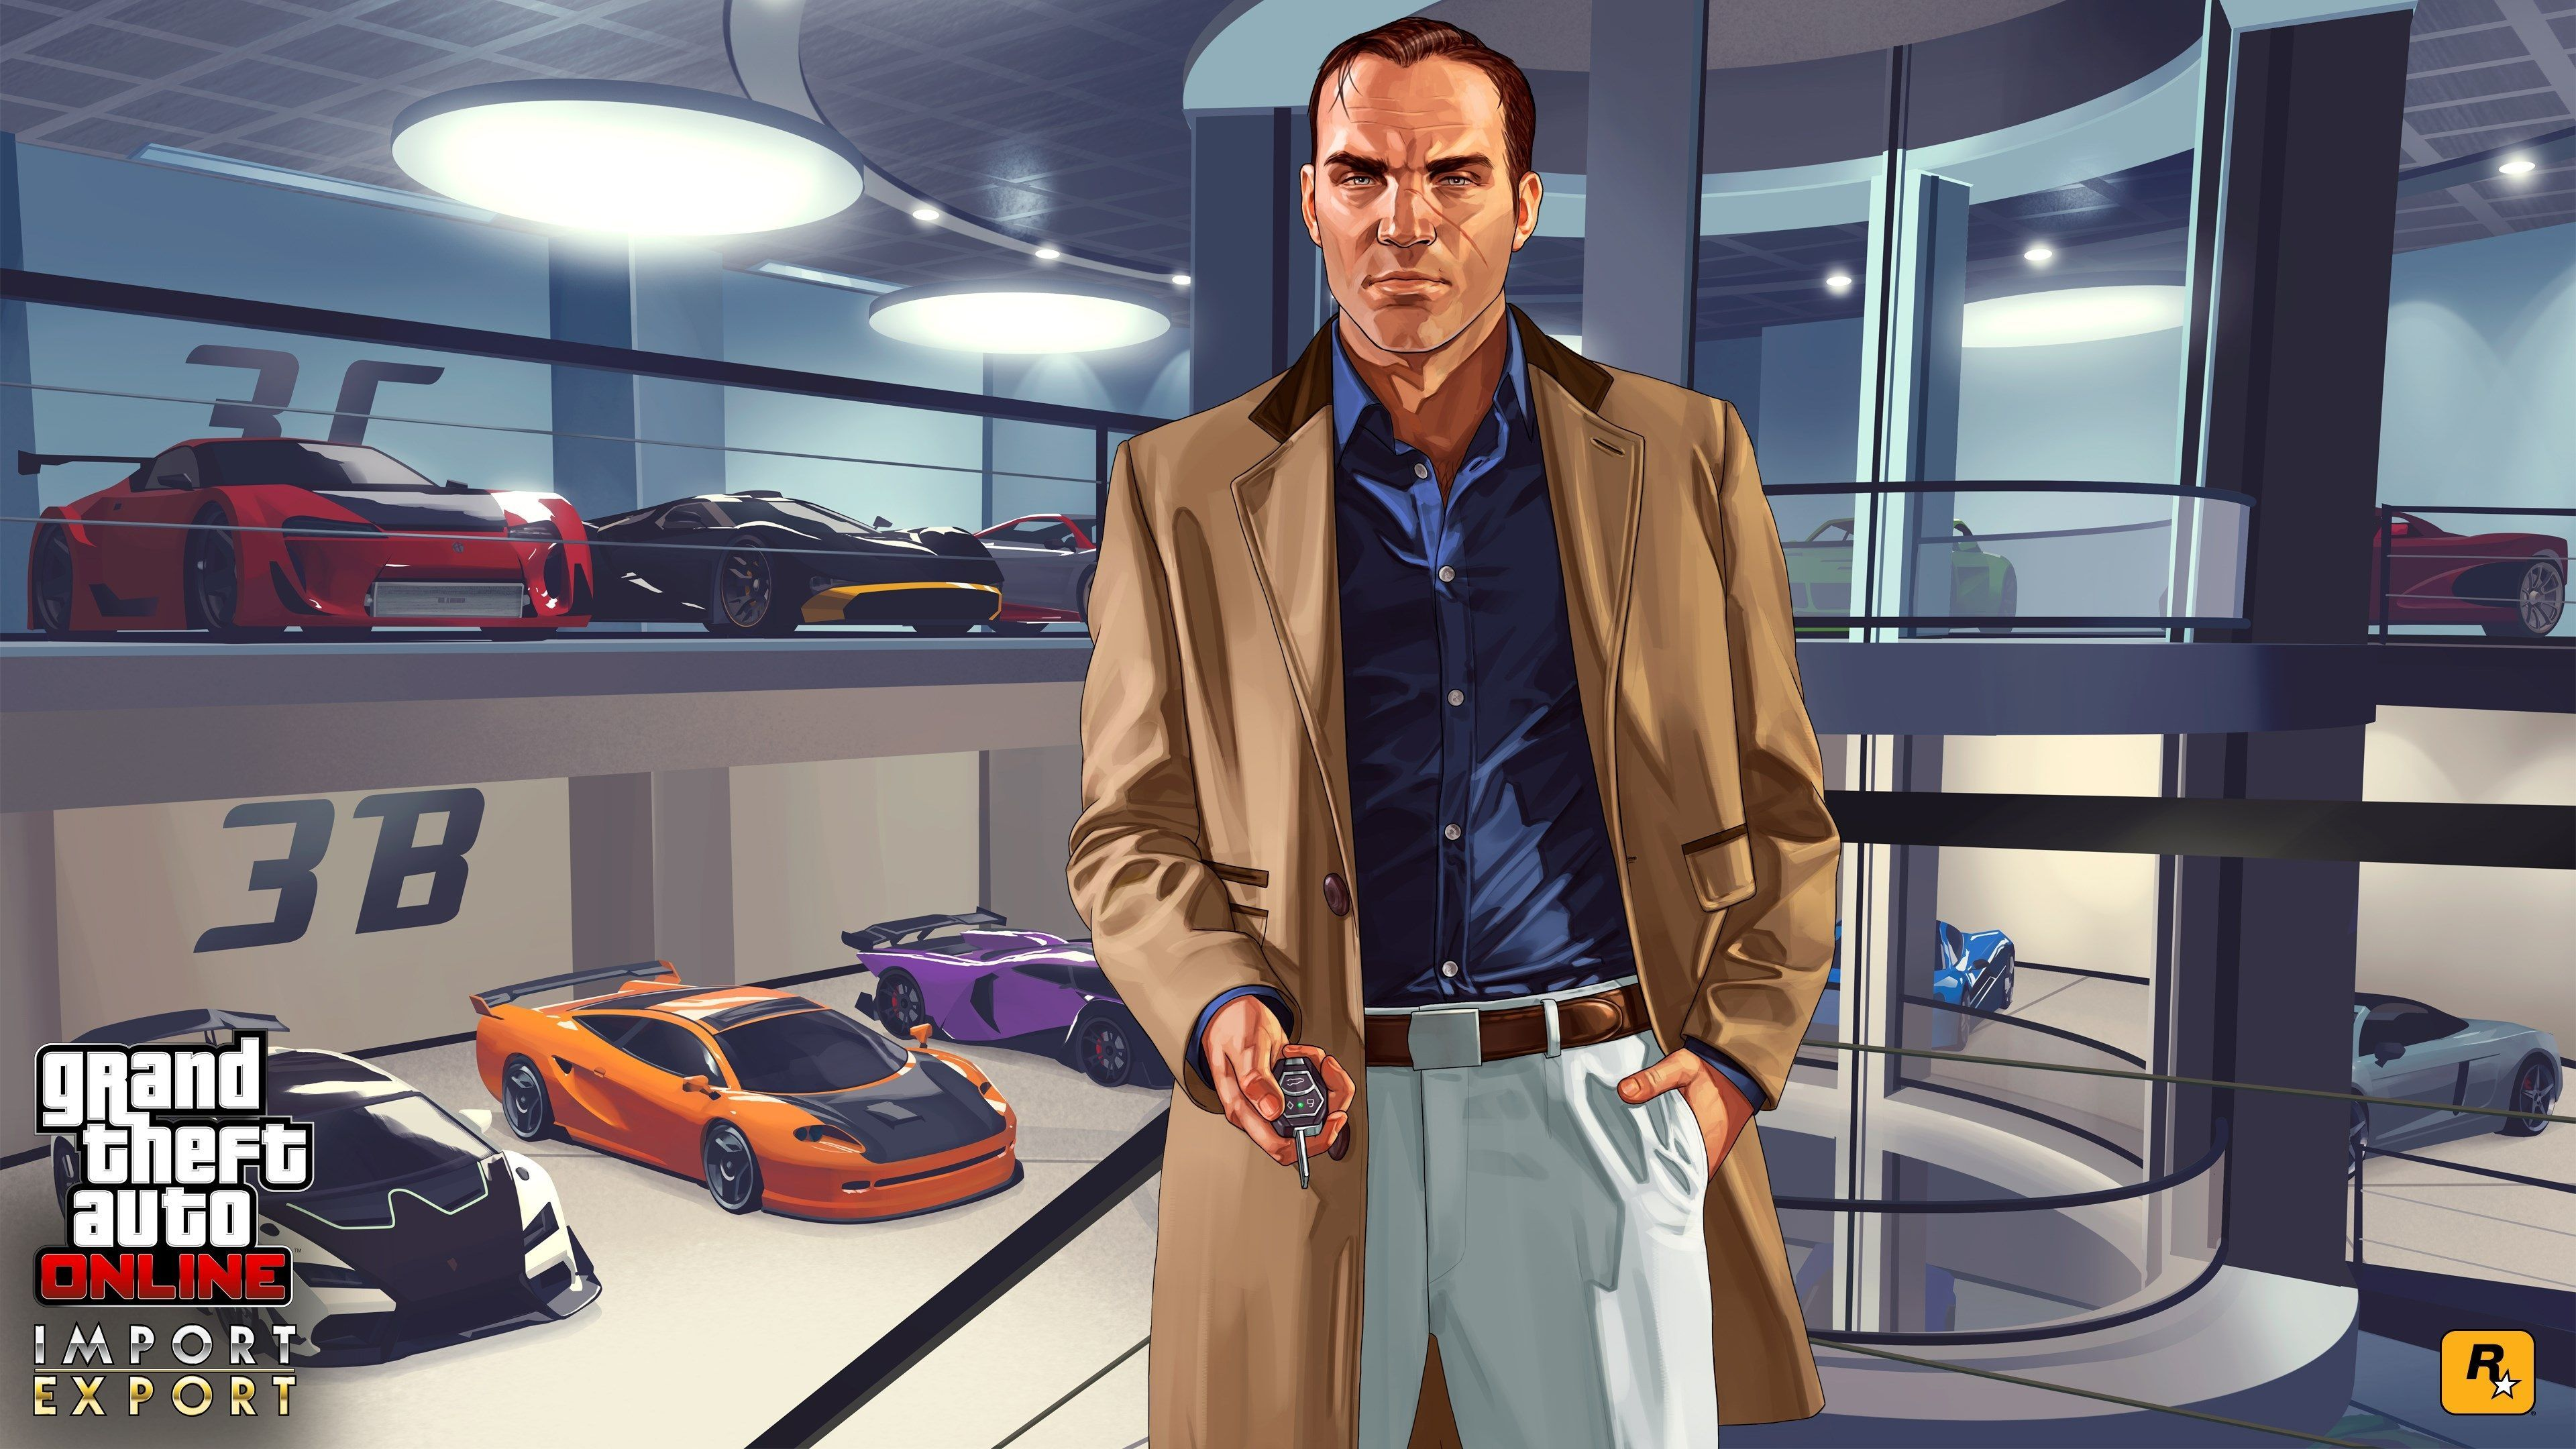 3840x2160 3840x2160 gta 5 4k hd amazing wallpaper | wallpapers and backgronds ...